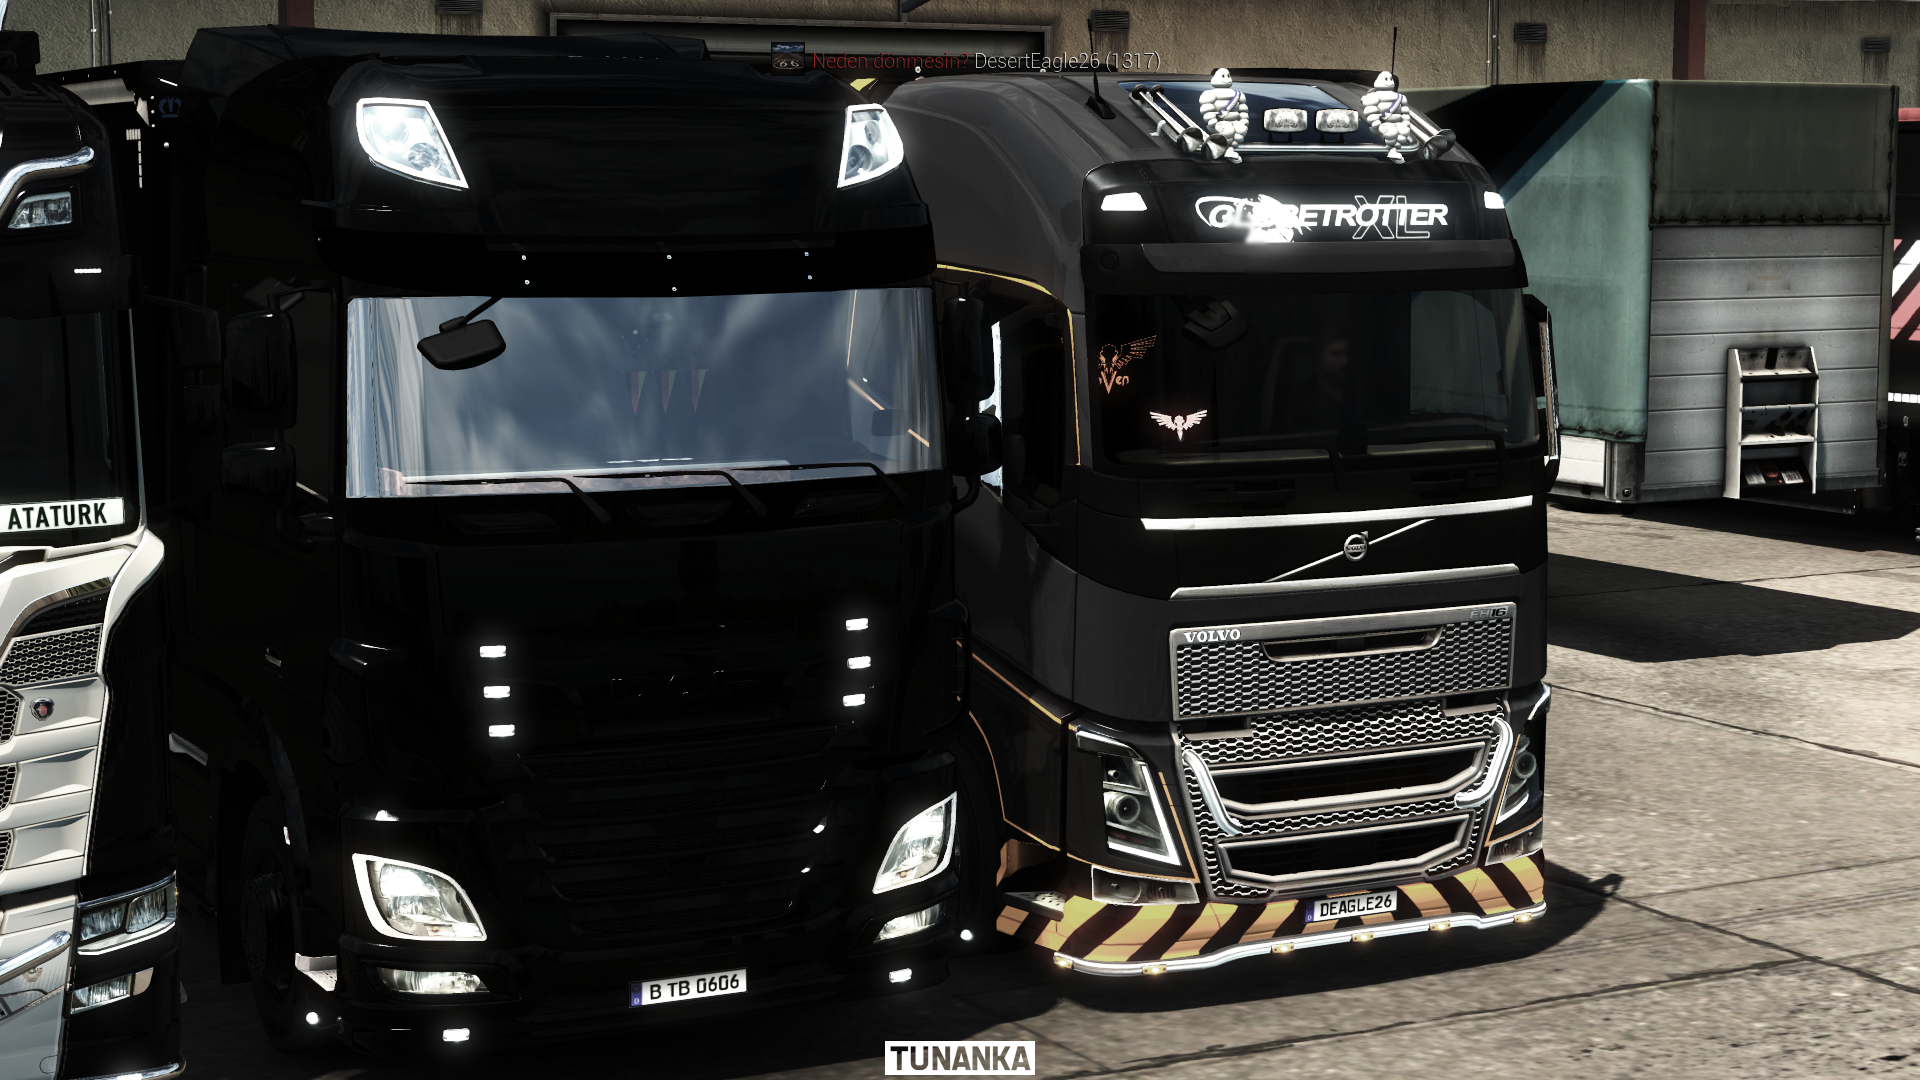 ets2_20180527_001918_00.png